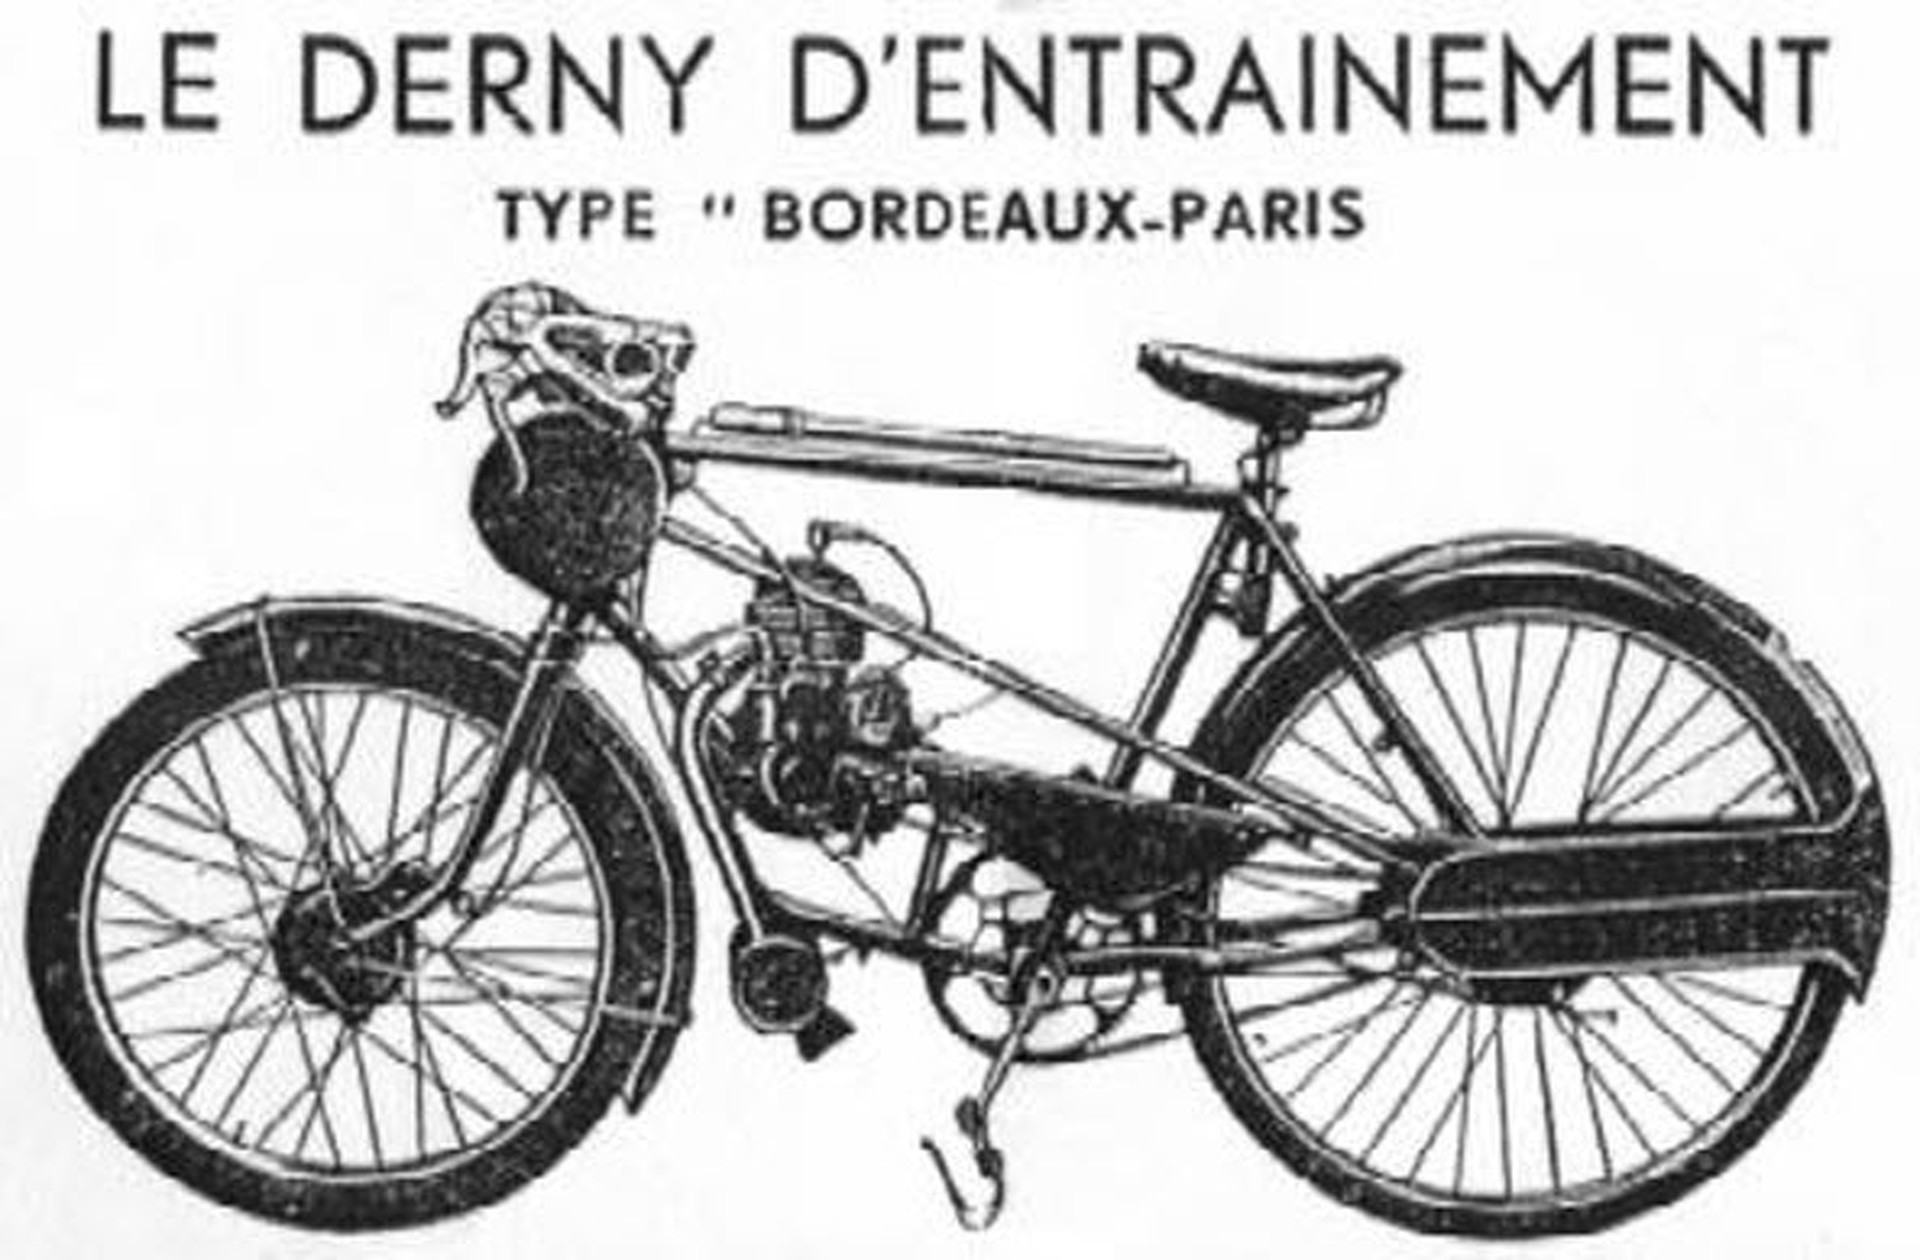 Two Wheel Tuesday: A Guide to Motorized Bicycles